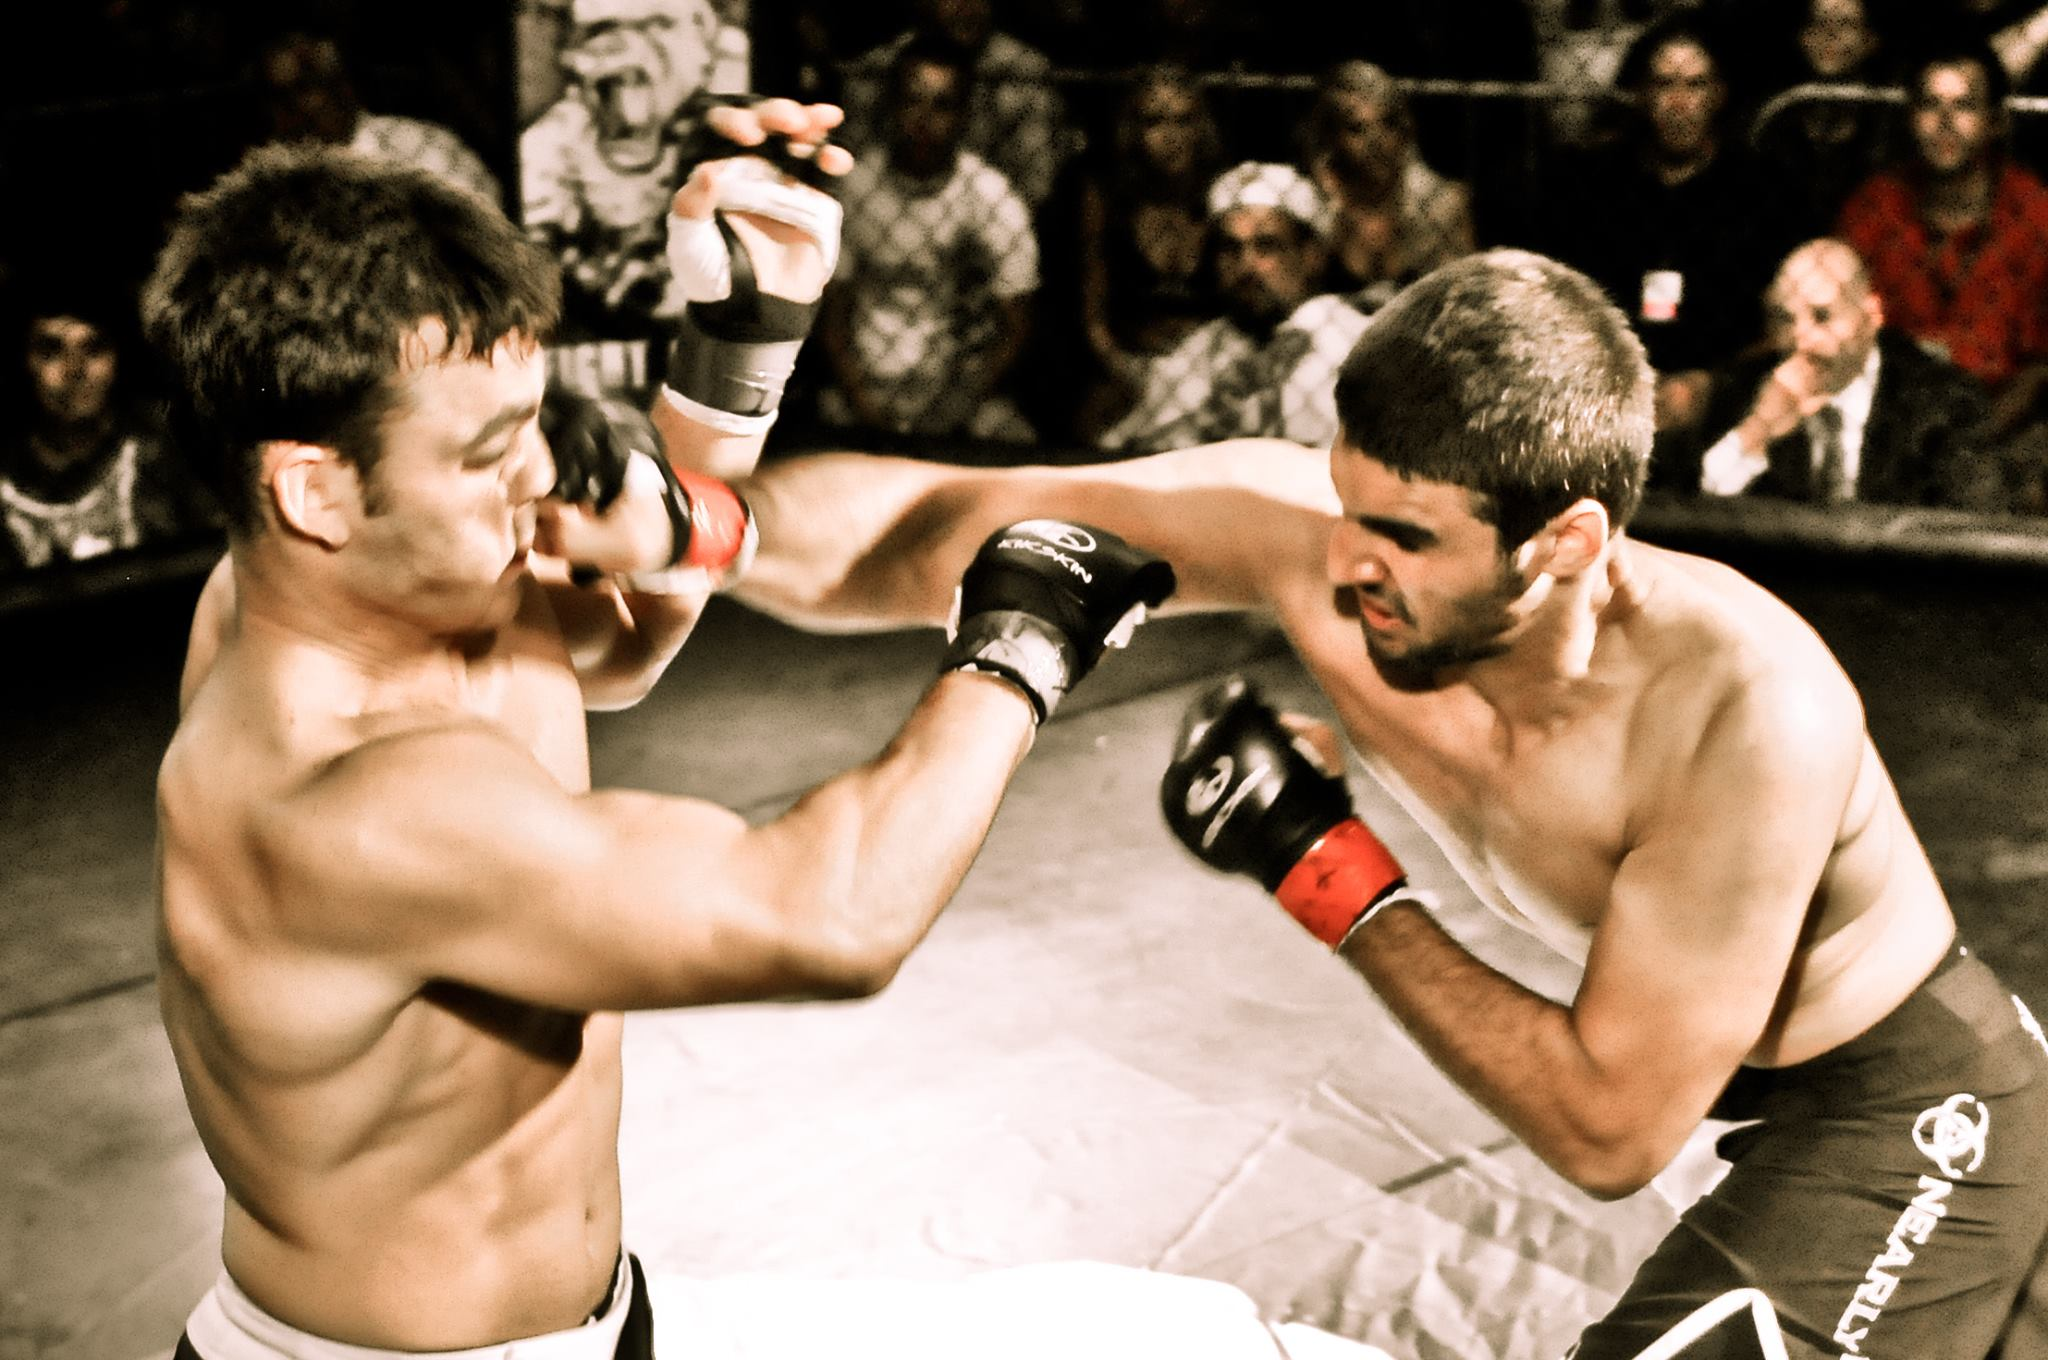 Mixed martial arts fighter from Lumbee Tribe proud of heritage